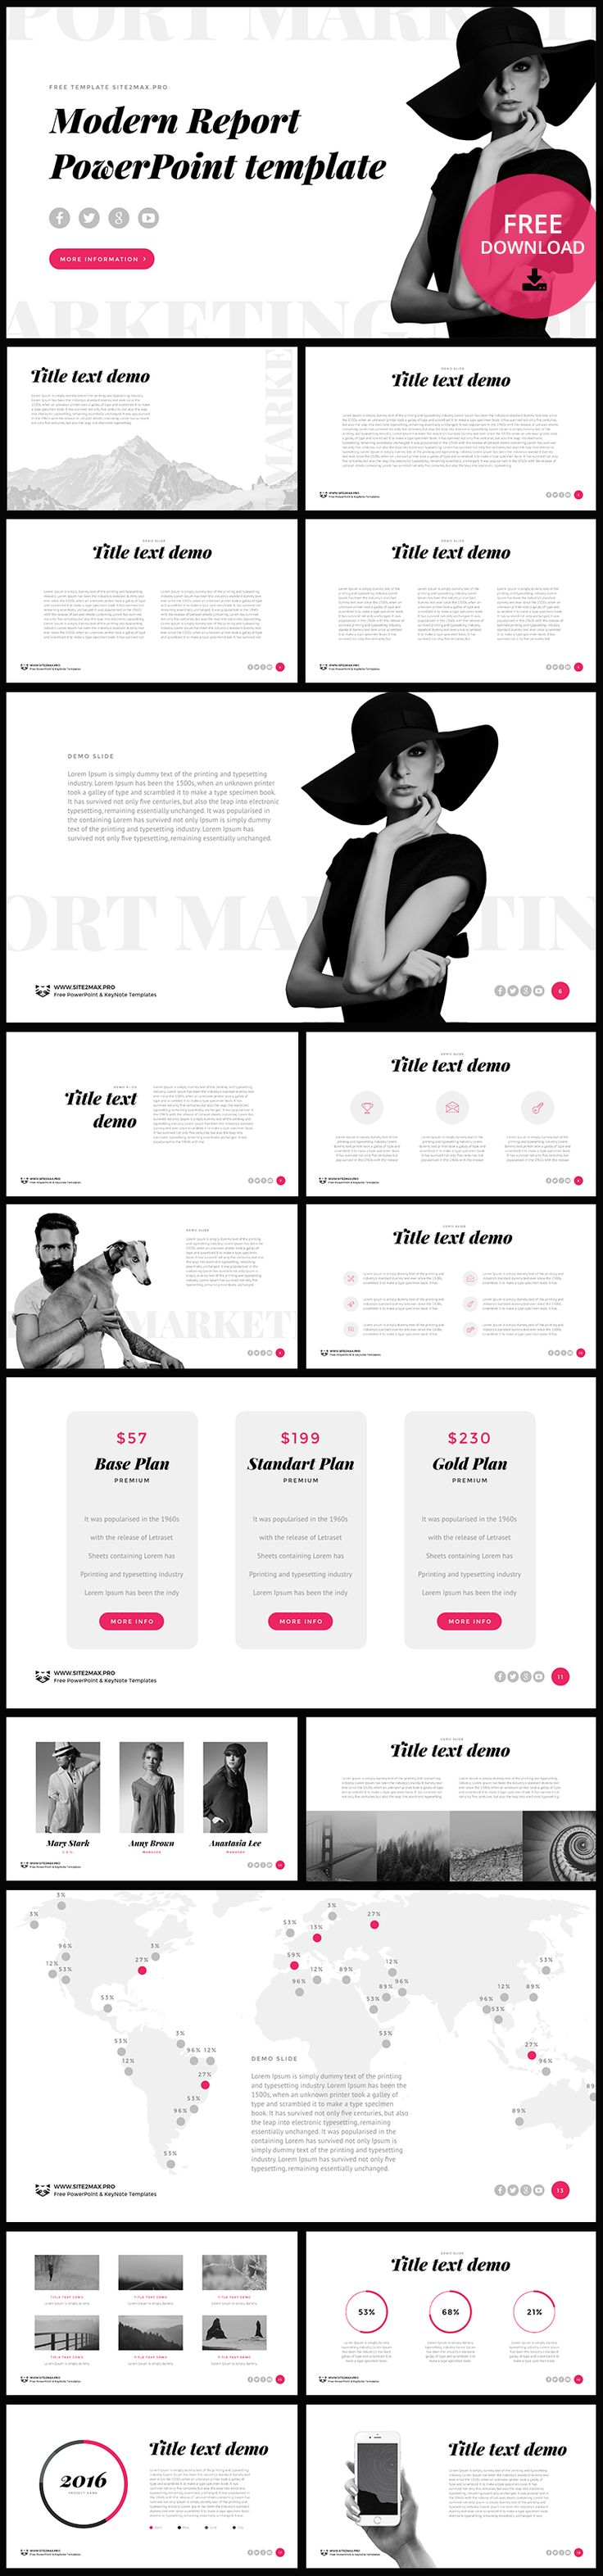 "Free PowerPoint template ""Modern Report"", DOWNLOAD LINK: http://site2max.pro/modern-report-free-ppt-template/ #ppt #pptx #powerpoint #modern #black #white #pink #report"